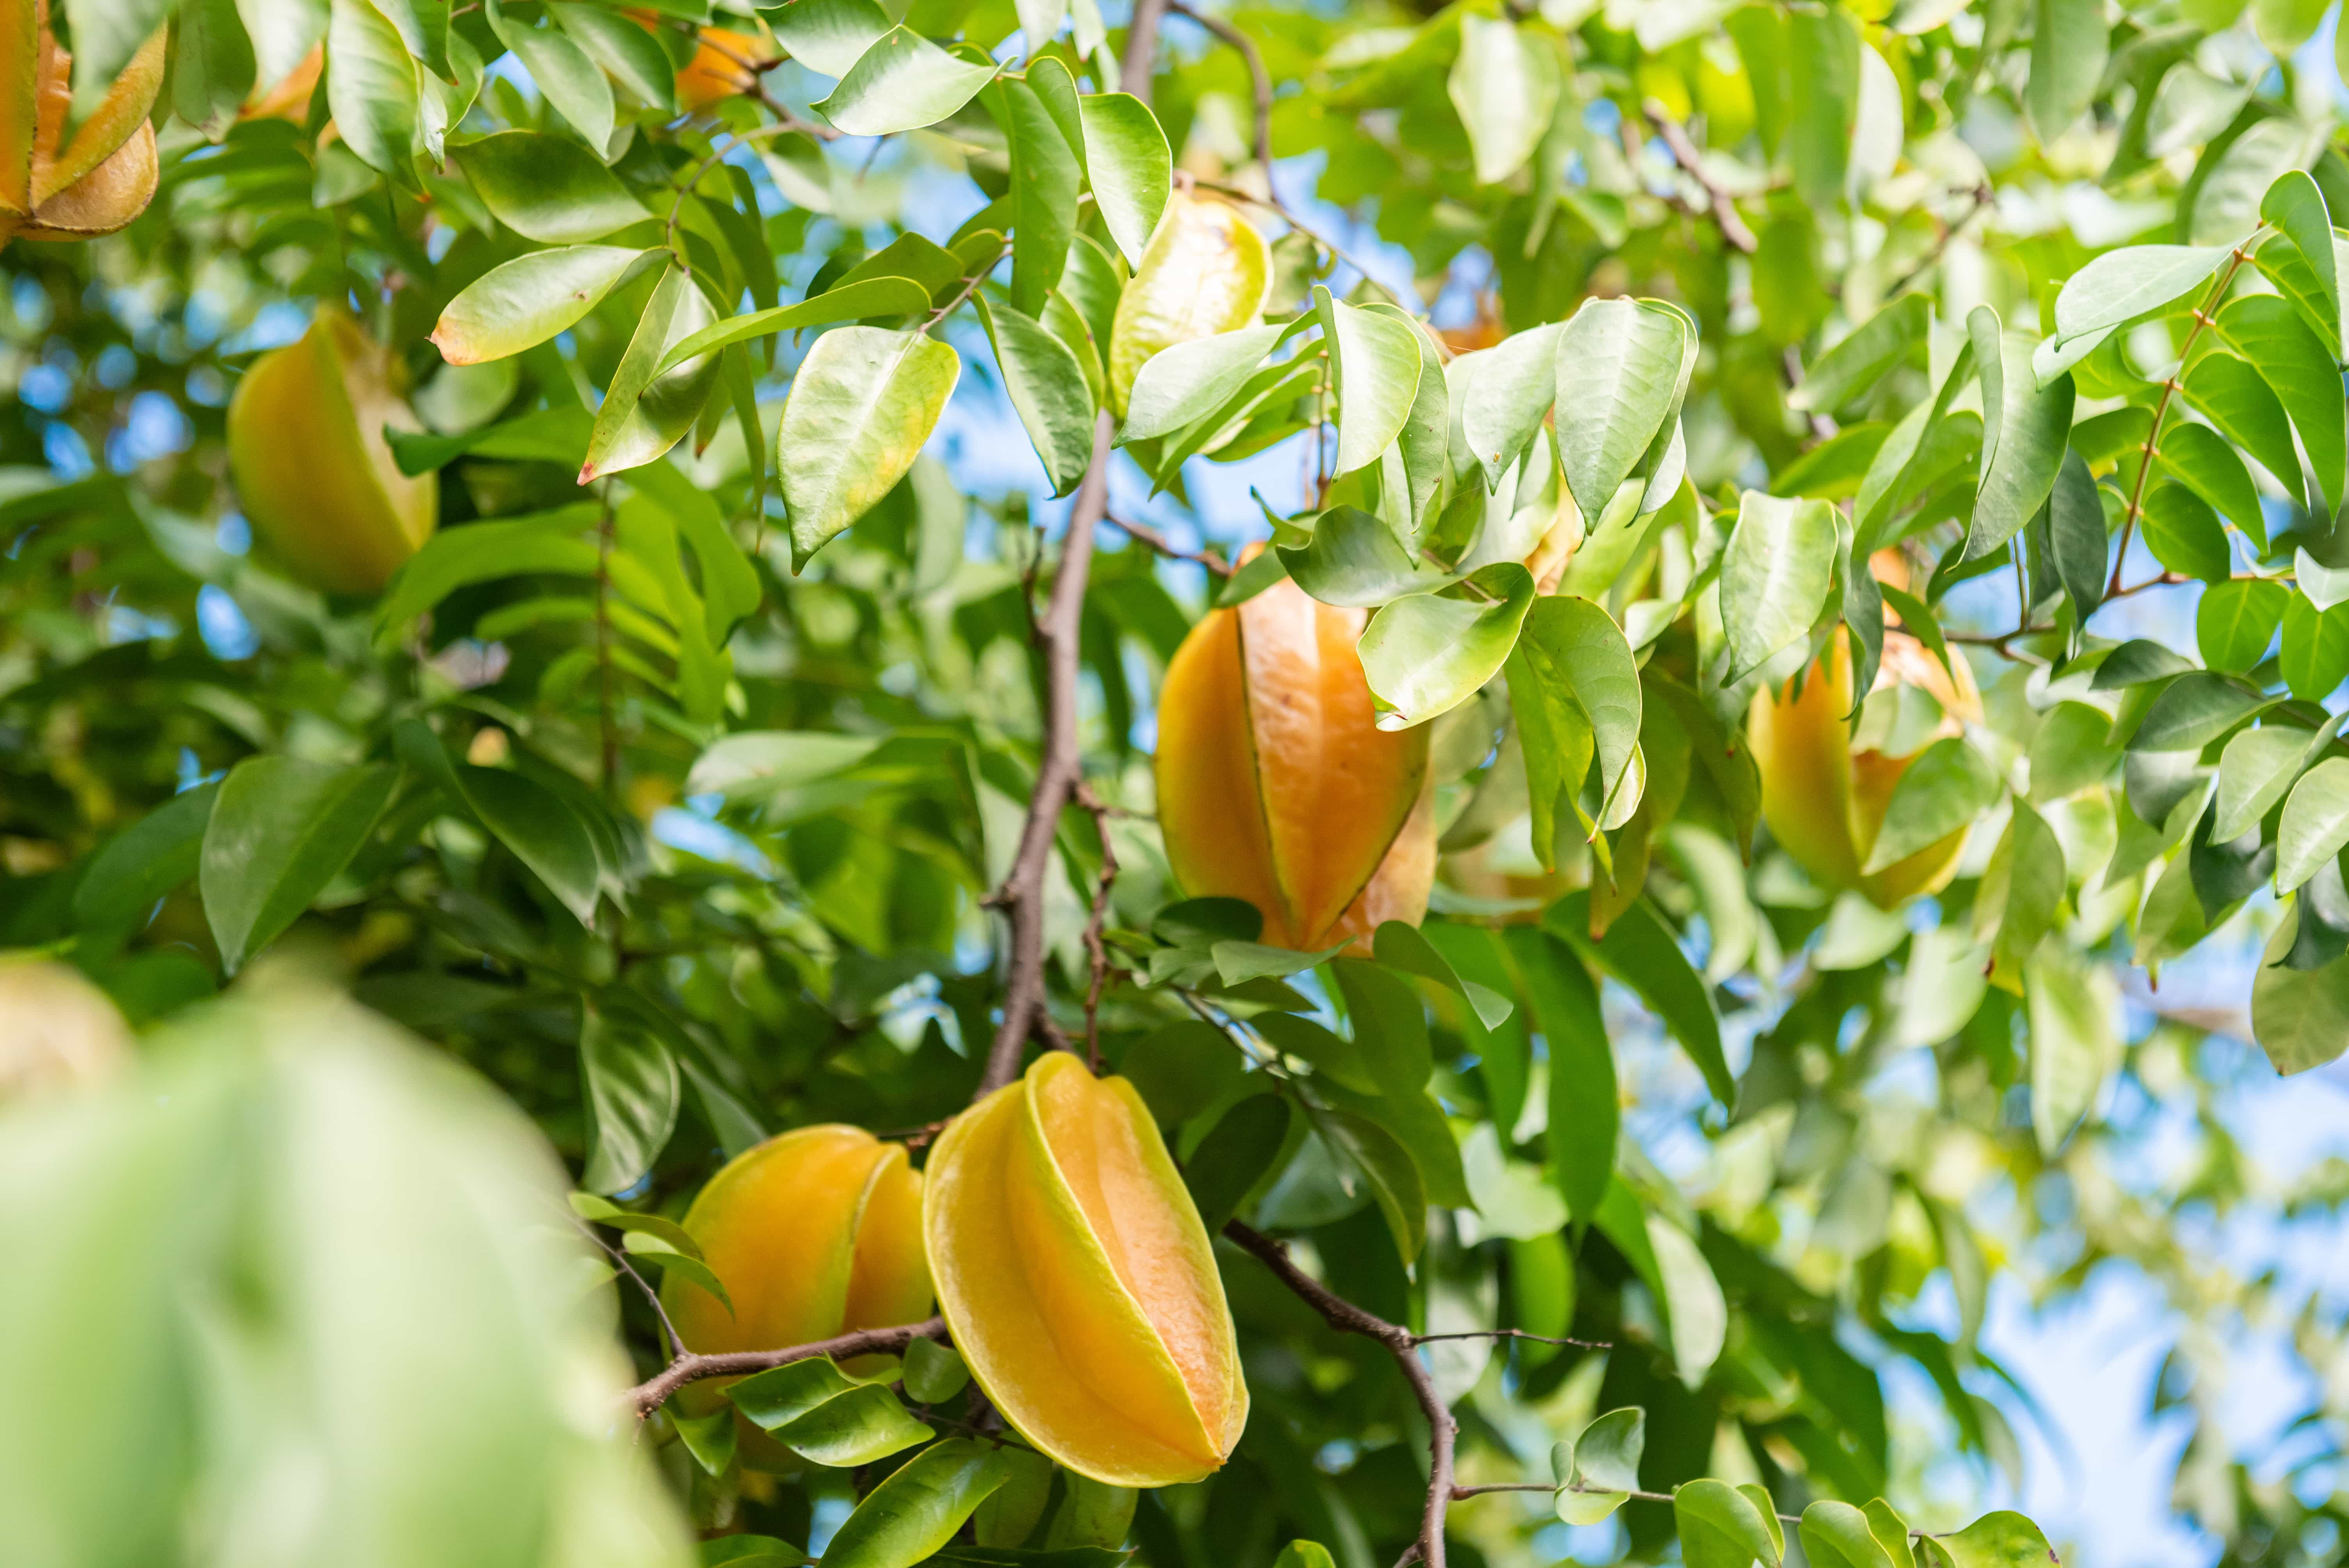 Tucked between all the cottages are fruit trees. Tamarind, carambola, coconut, and more can be found here. And they're perfect for picking!